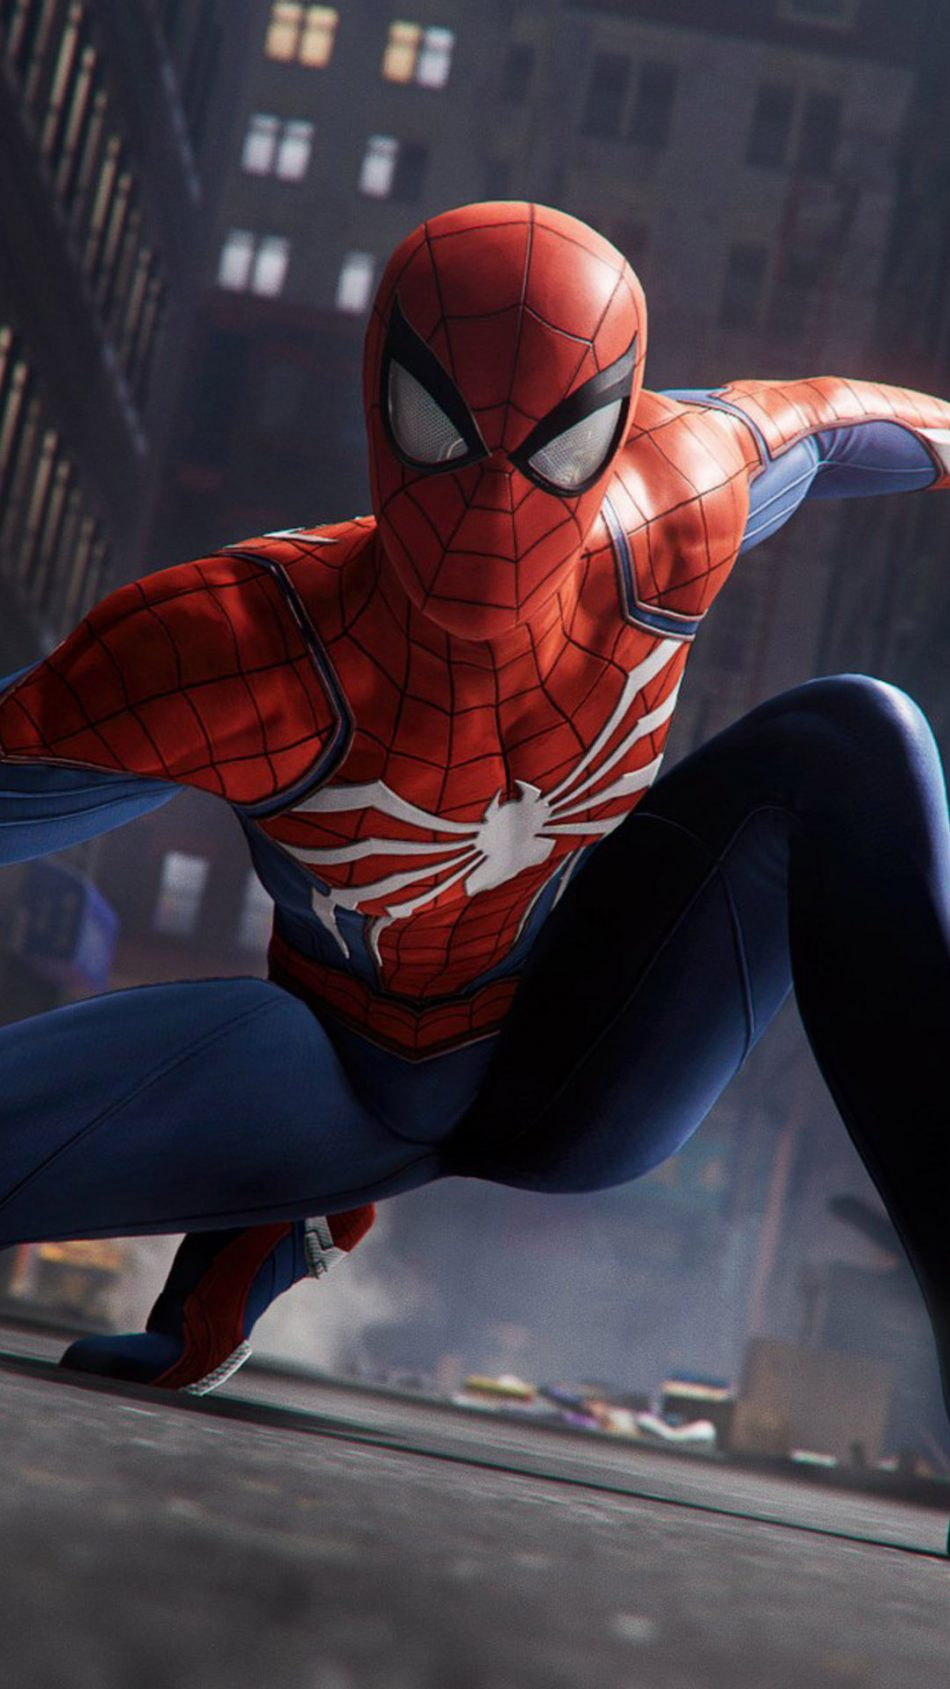 Download Spider Man Playstation 4 Game Free Pure 4k Ultra Hd Mobile